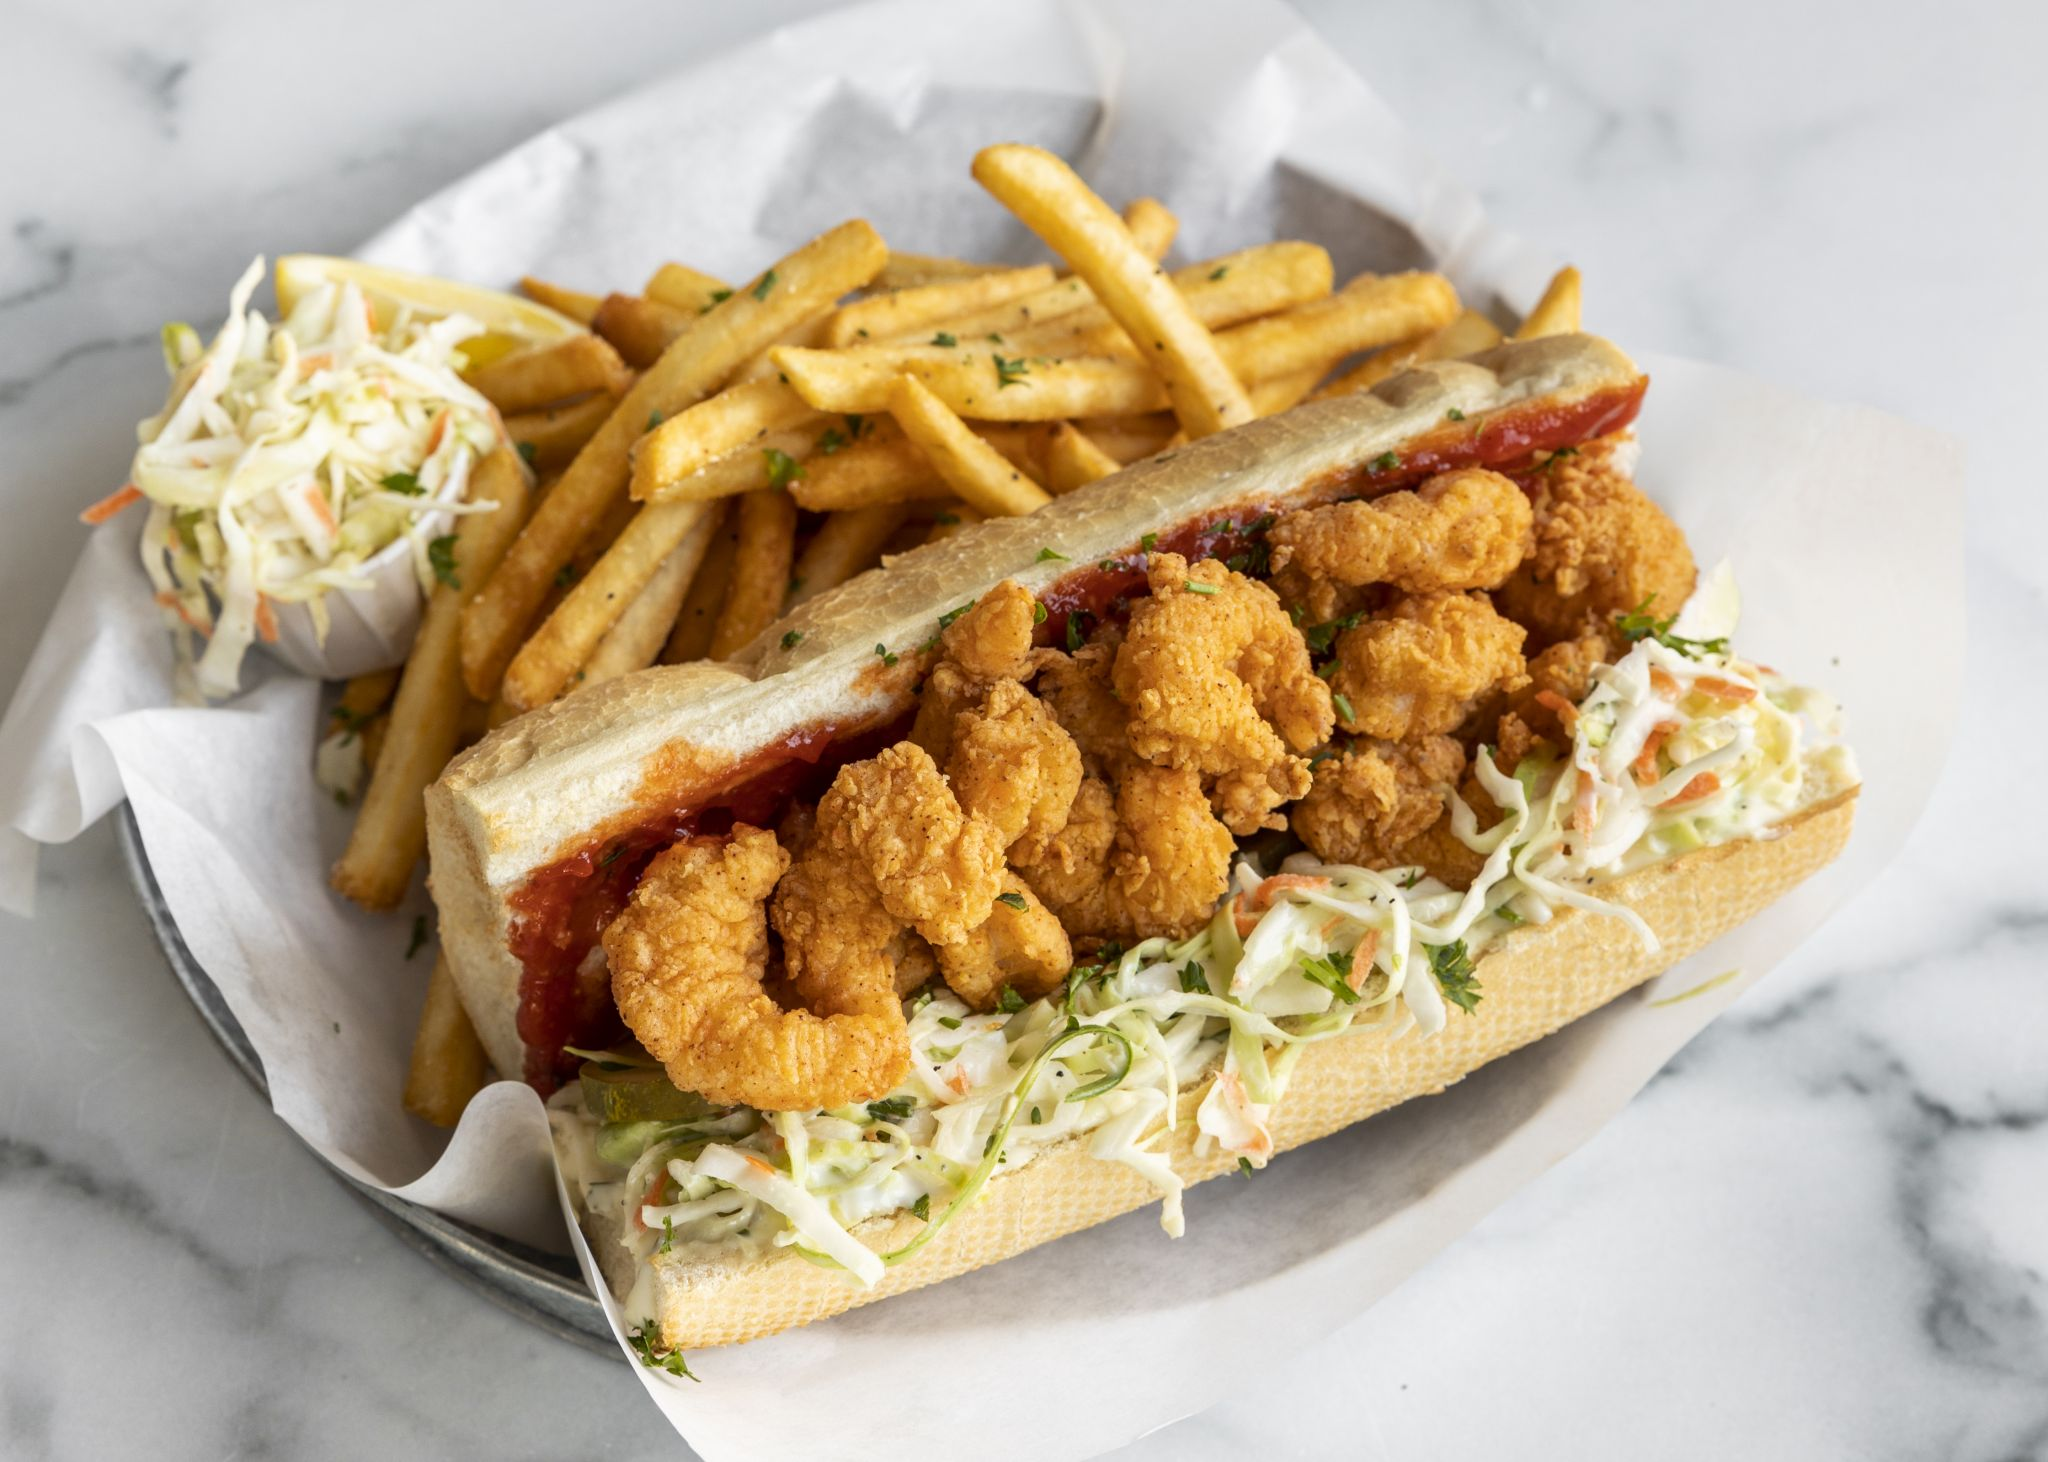 Houston-owned Pappas Restaurants to roll out new concept: Pappas Shrimp Shack